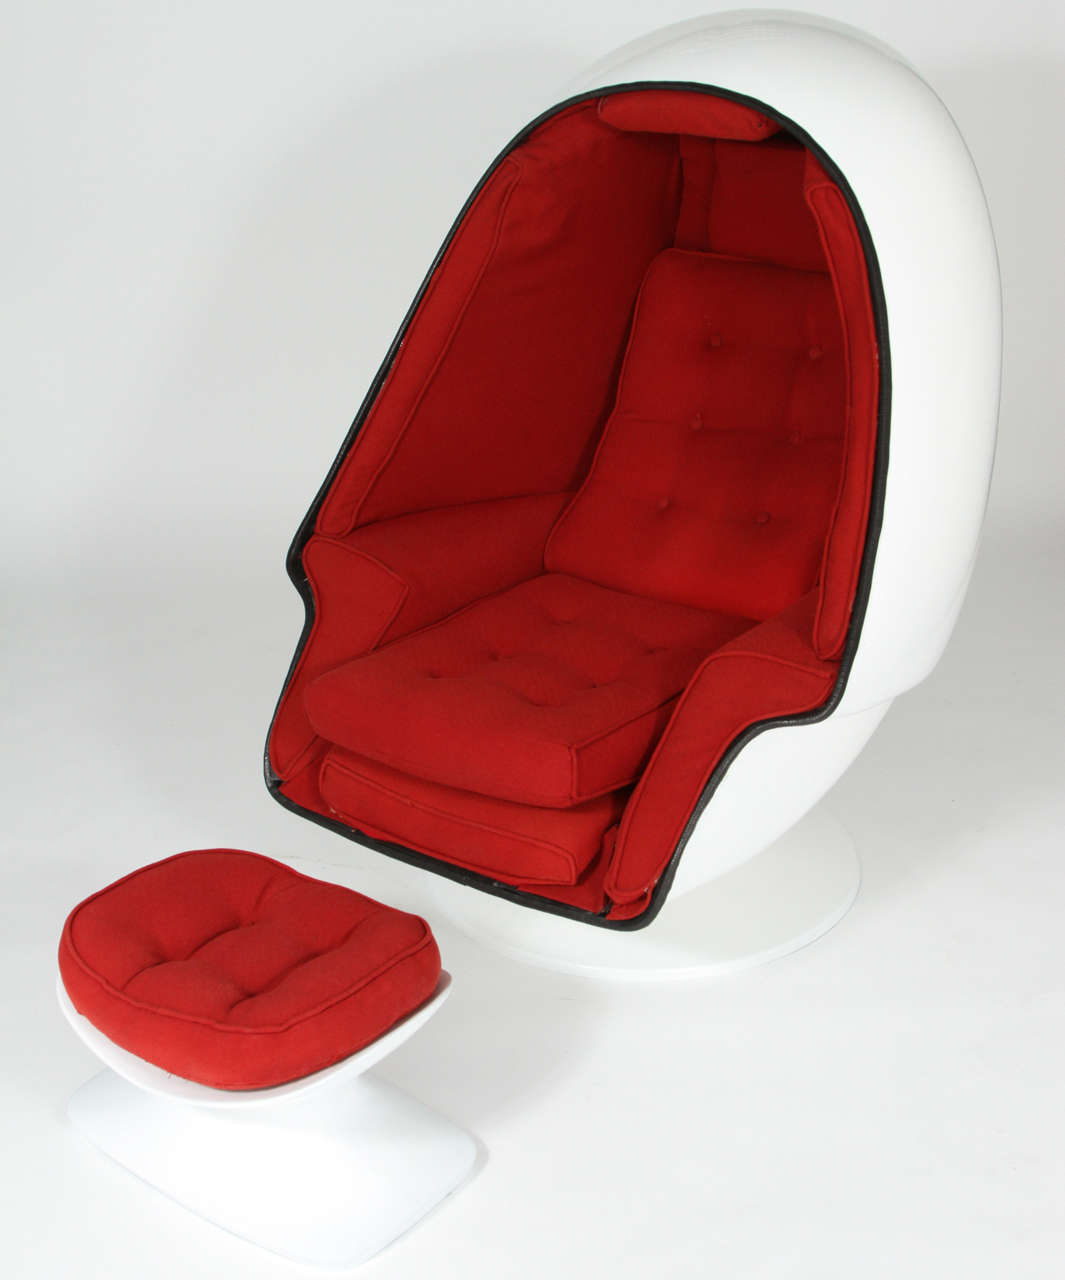 Egg Chair With Speakers Very Rare 1968 Tony Casello Associates Fiberglass Egg